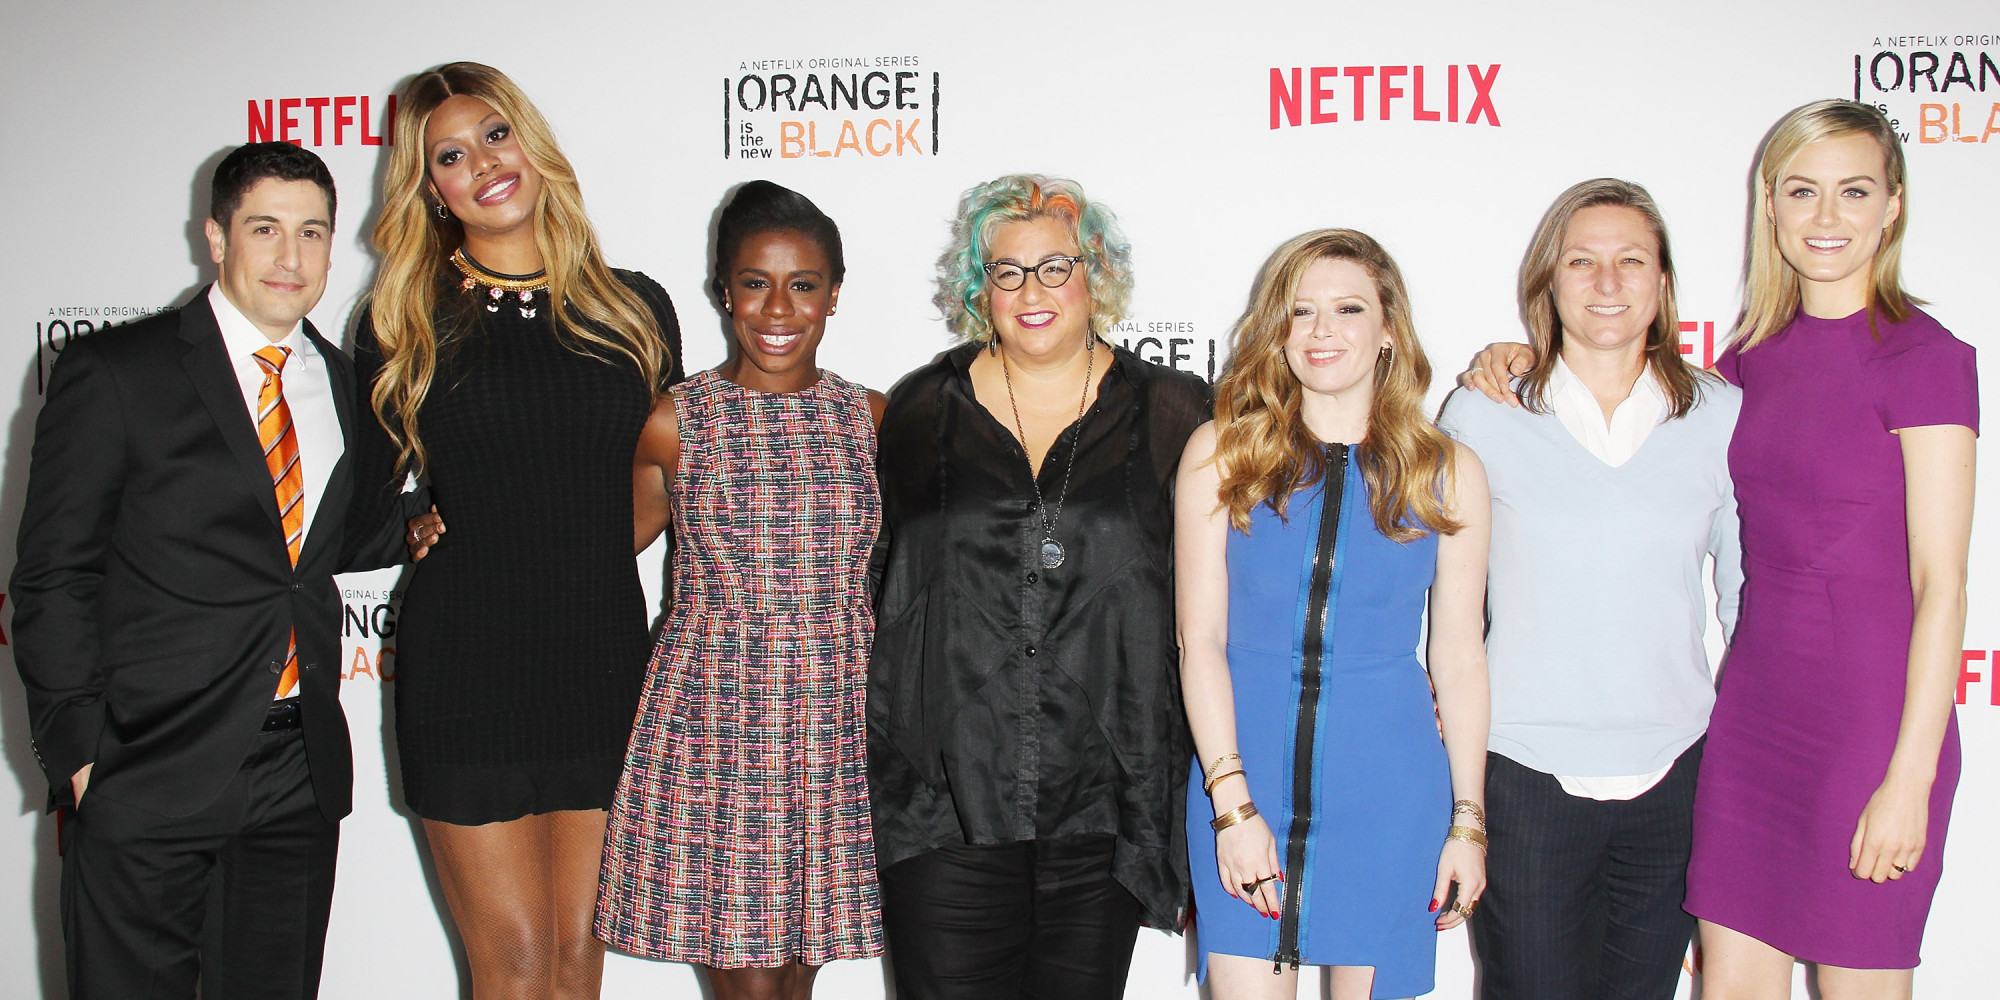 orange is the new black characters dating in real life Lauren morelli says writing for orange is the new black helped dating one of the show's stars living a gay life without publicly acknowledging it.